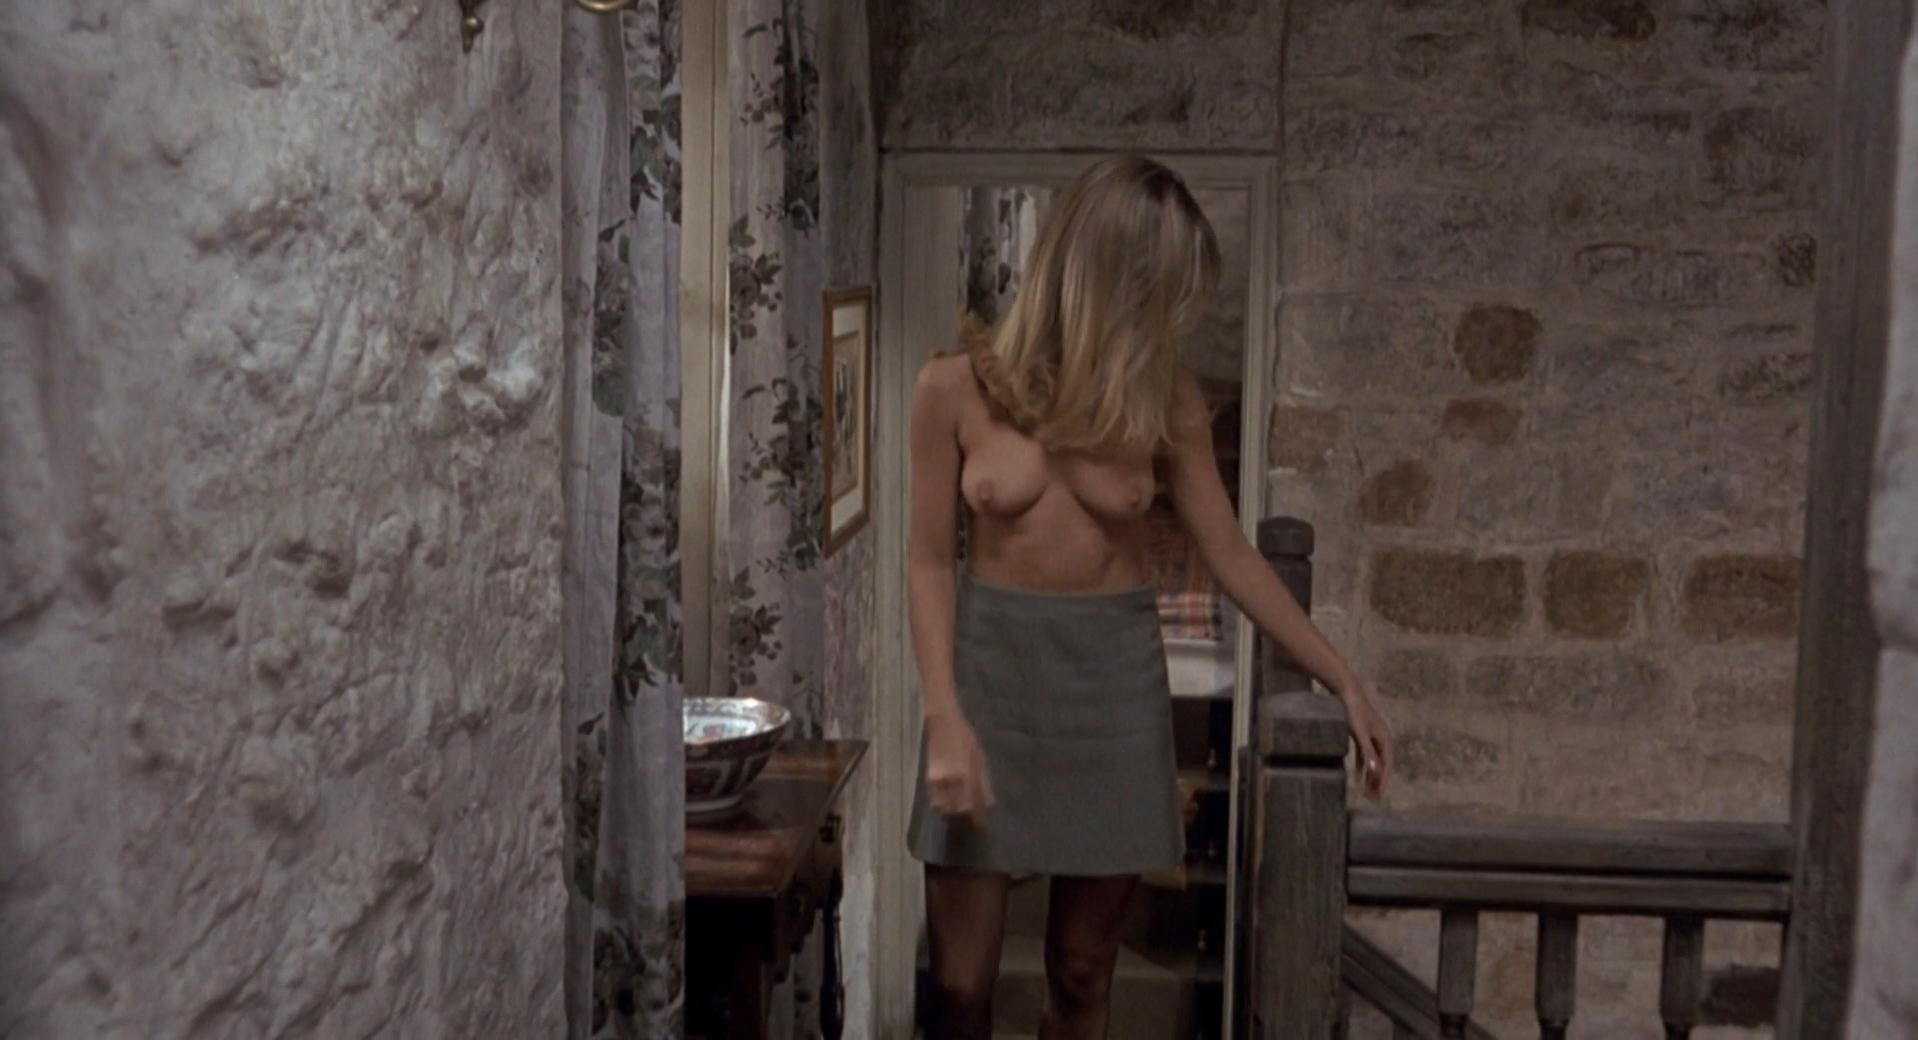 Tits Tits Susan George (actress)  nudes (82 pictures), Facebook, butt